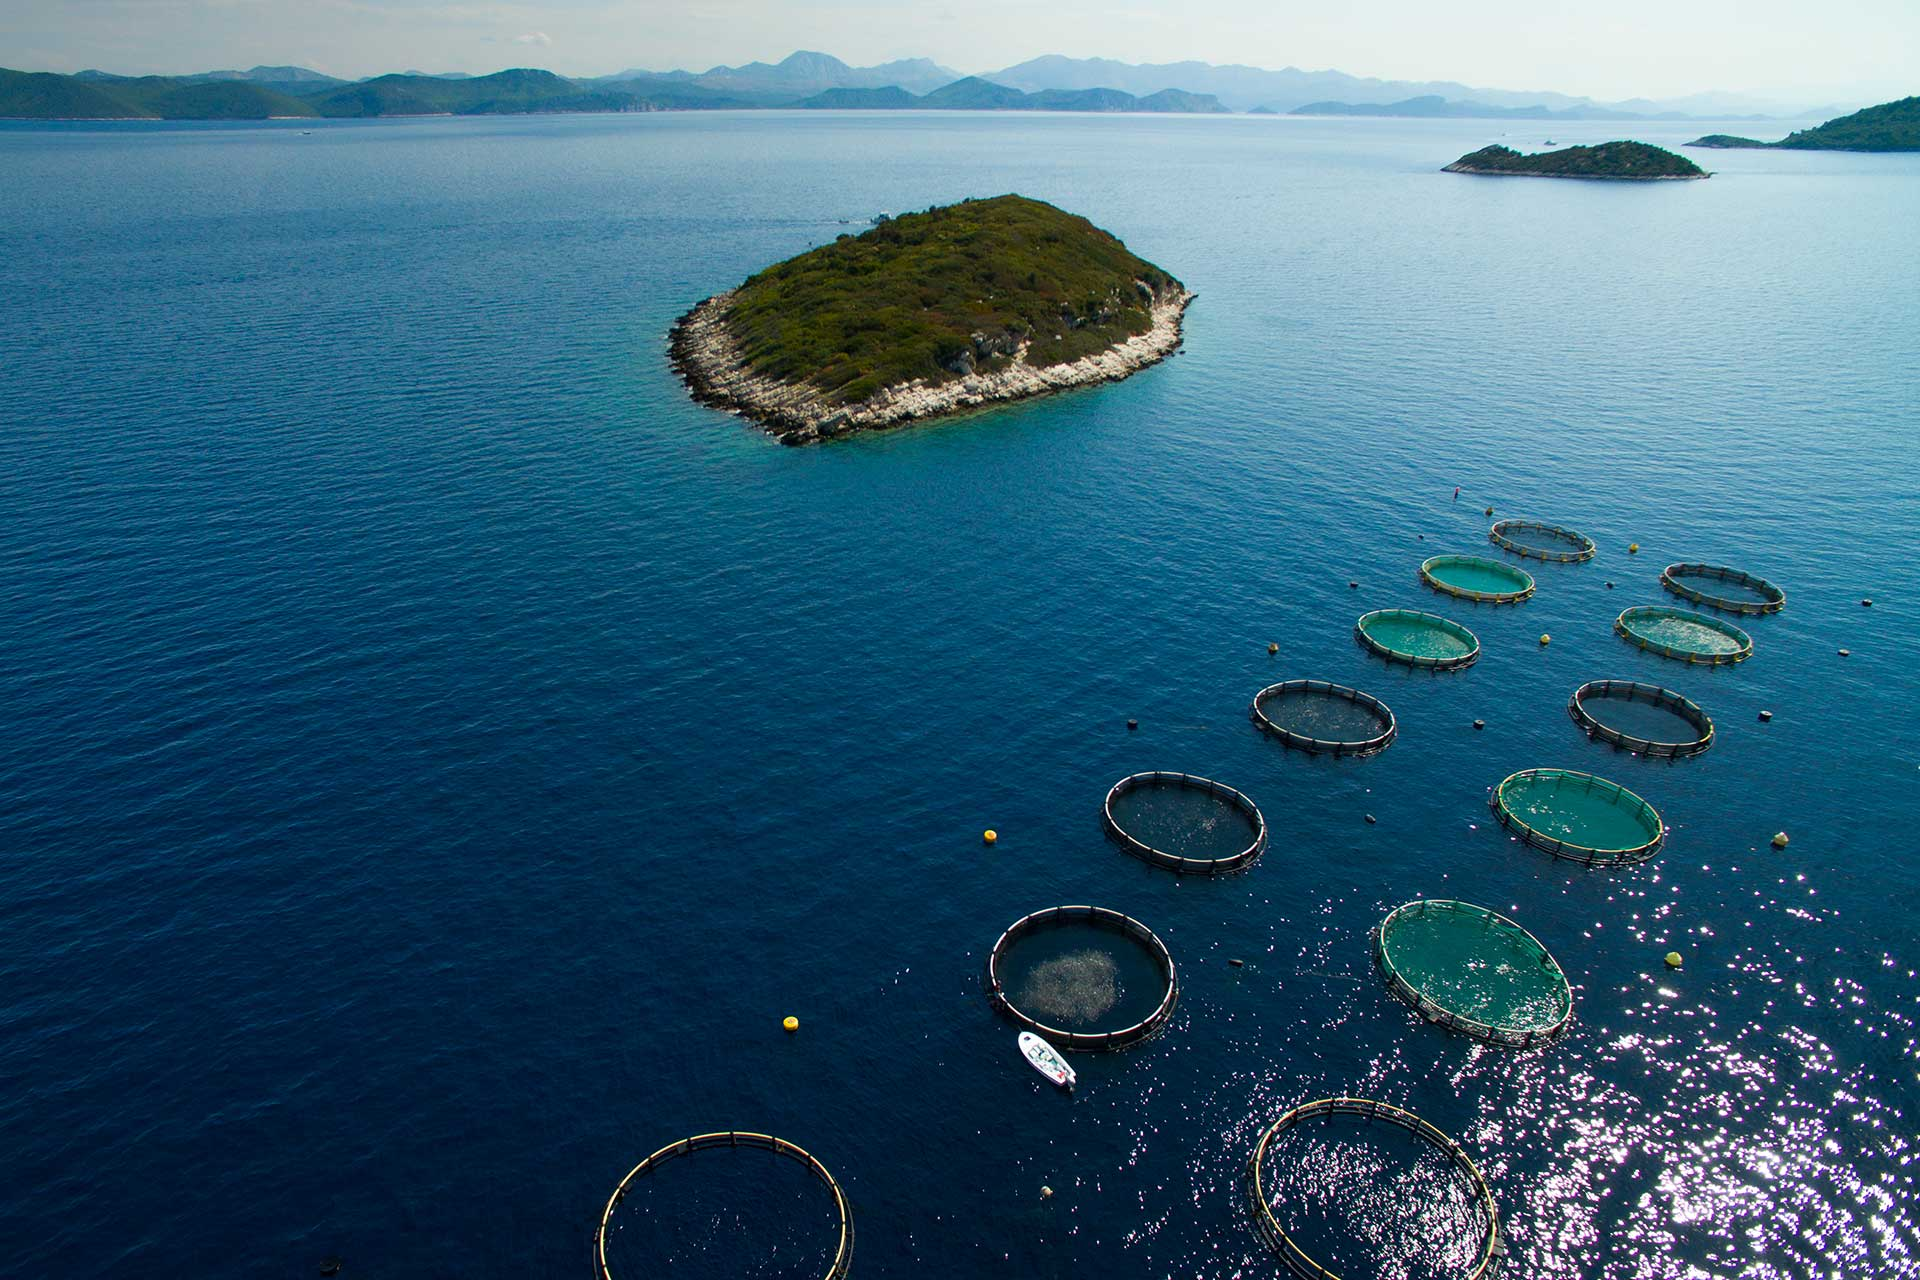 Riba Mljet Fisheries - nets floating on the open sea